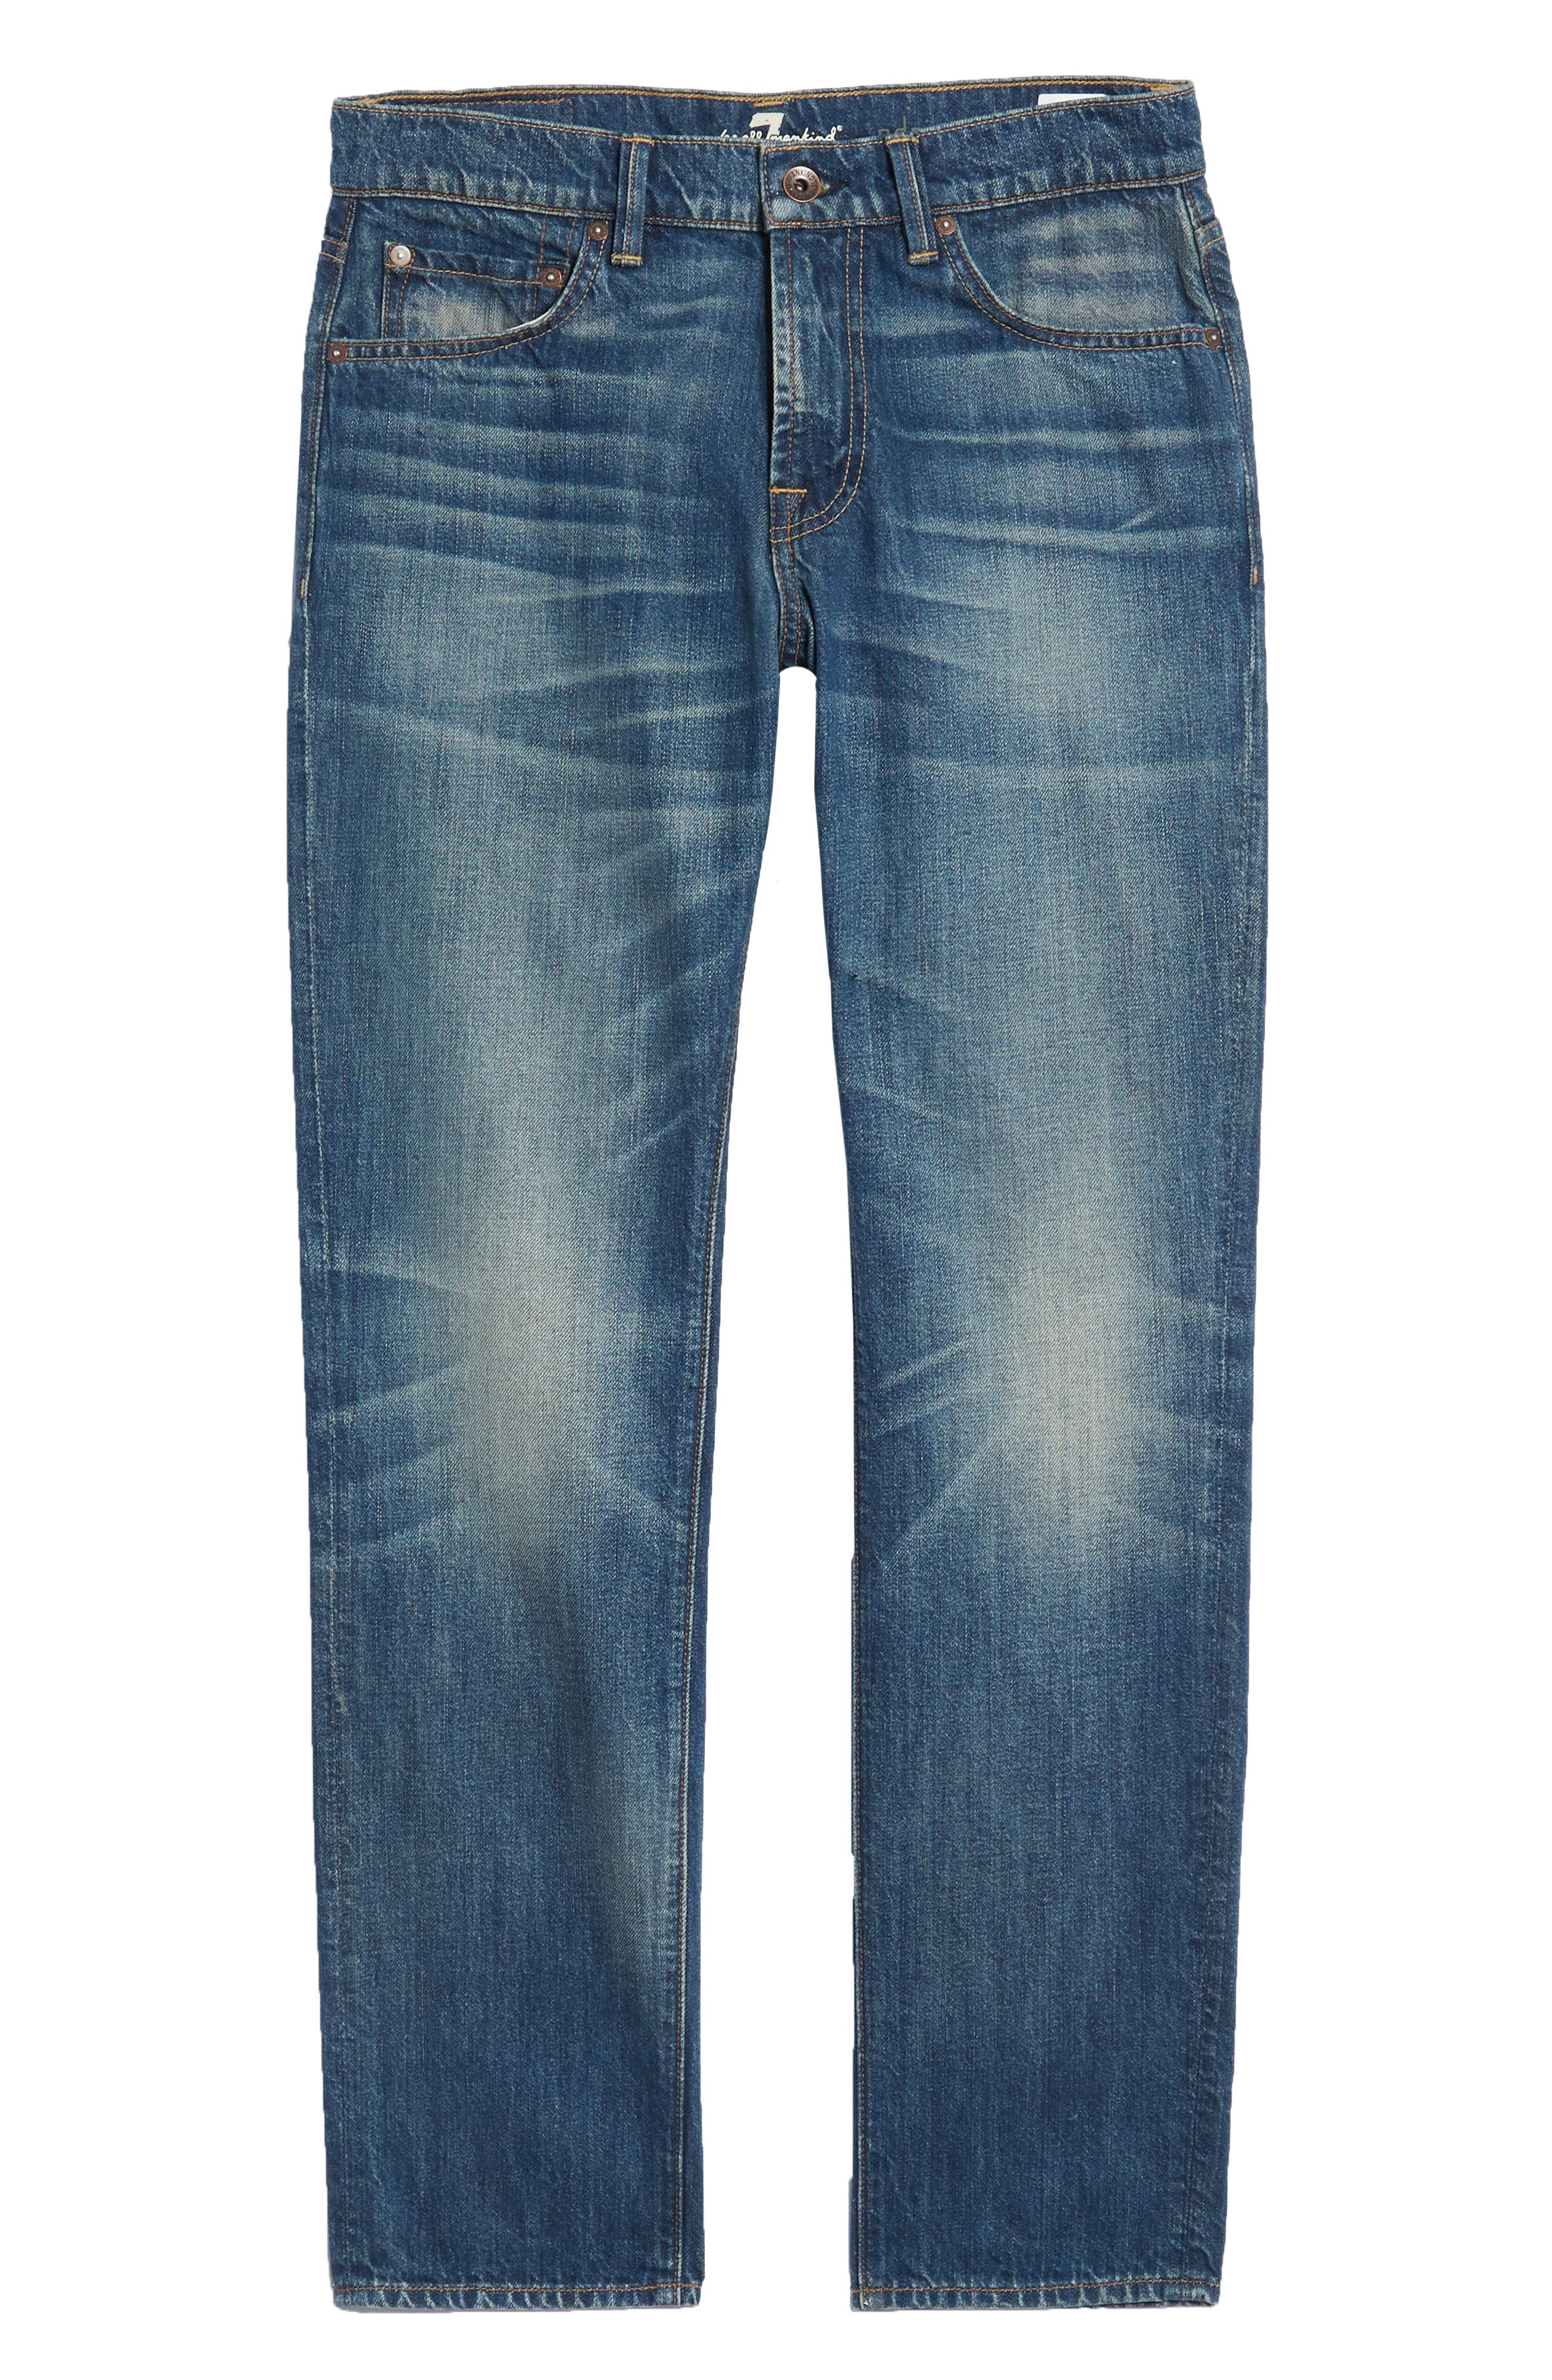 7 FOR ALL MANKIND<SUP>®</SUP>, Adrien Slim Fit Jeans, Alternate thumbnail 6, color, LEGEND